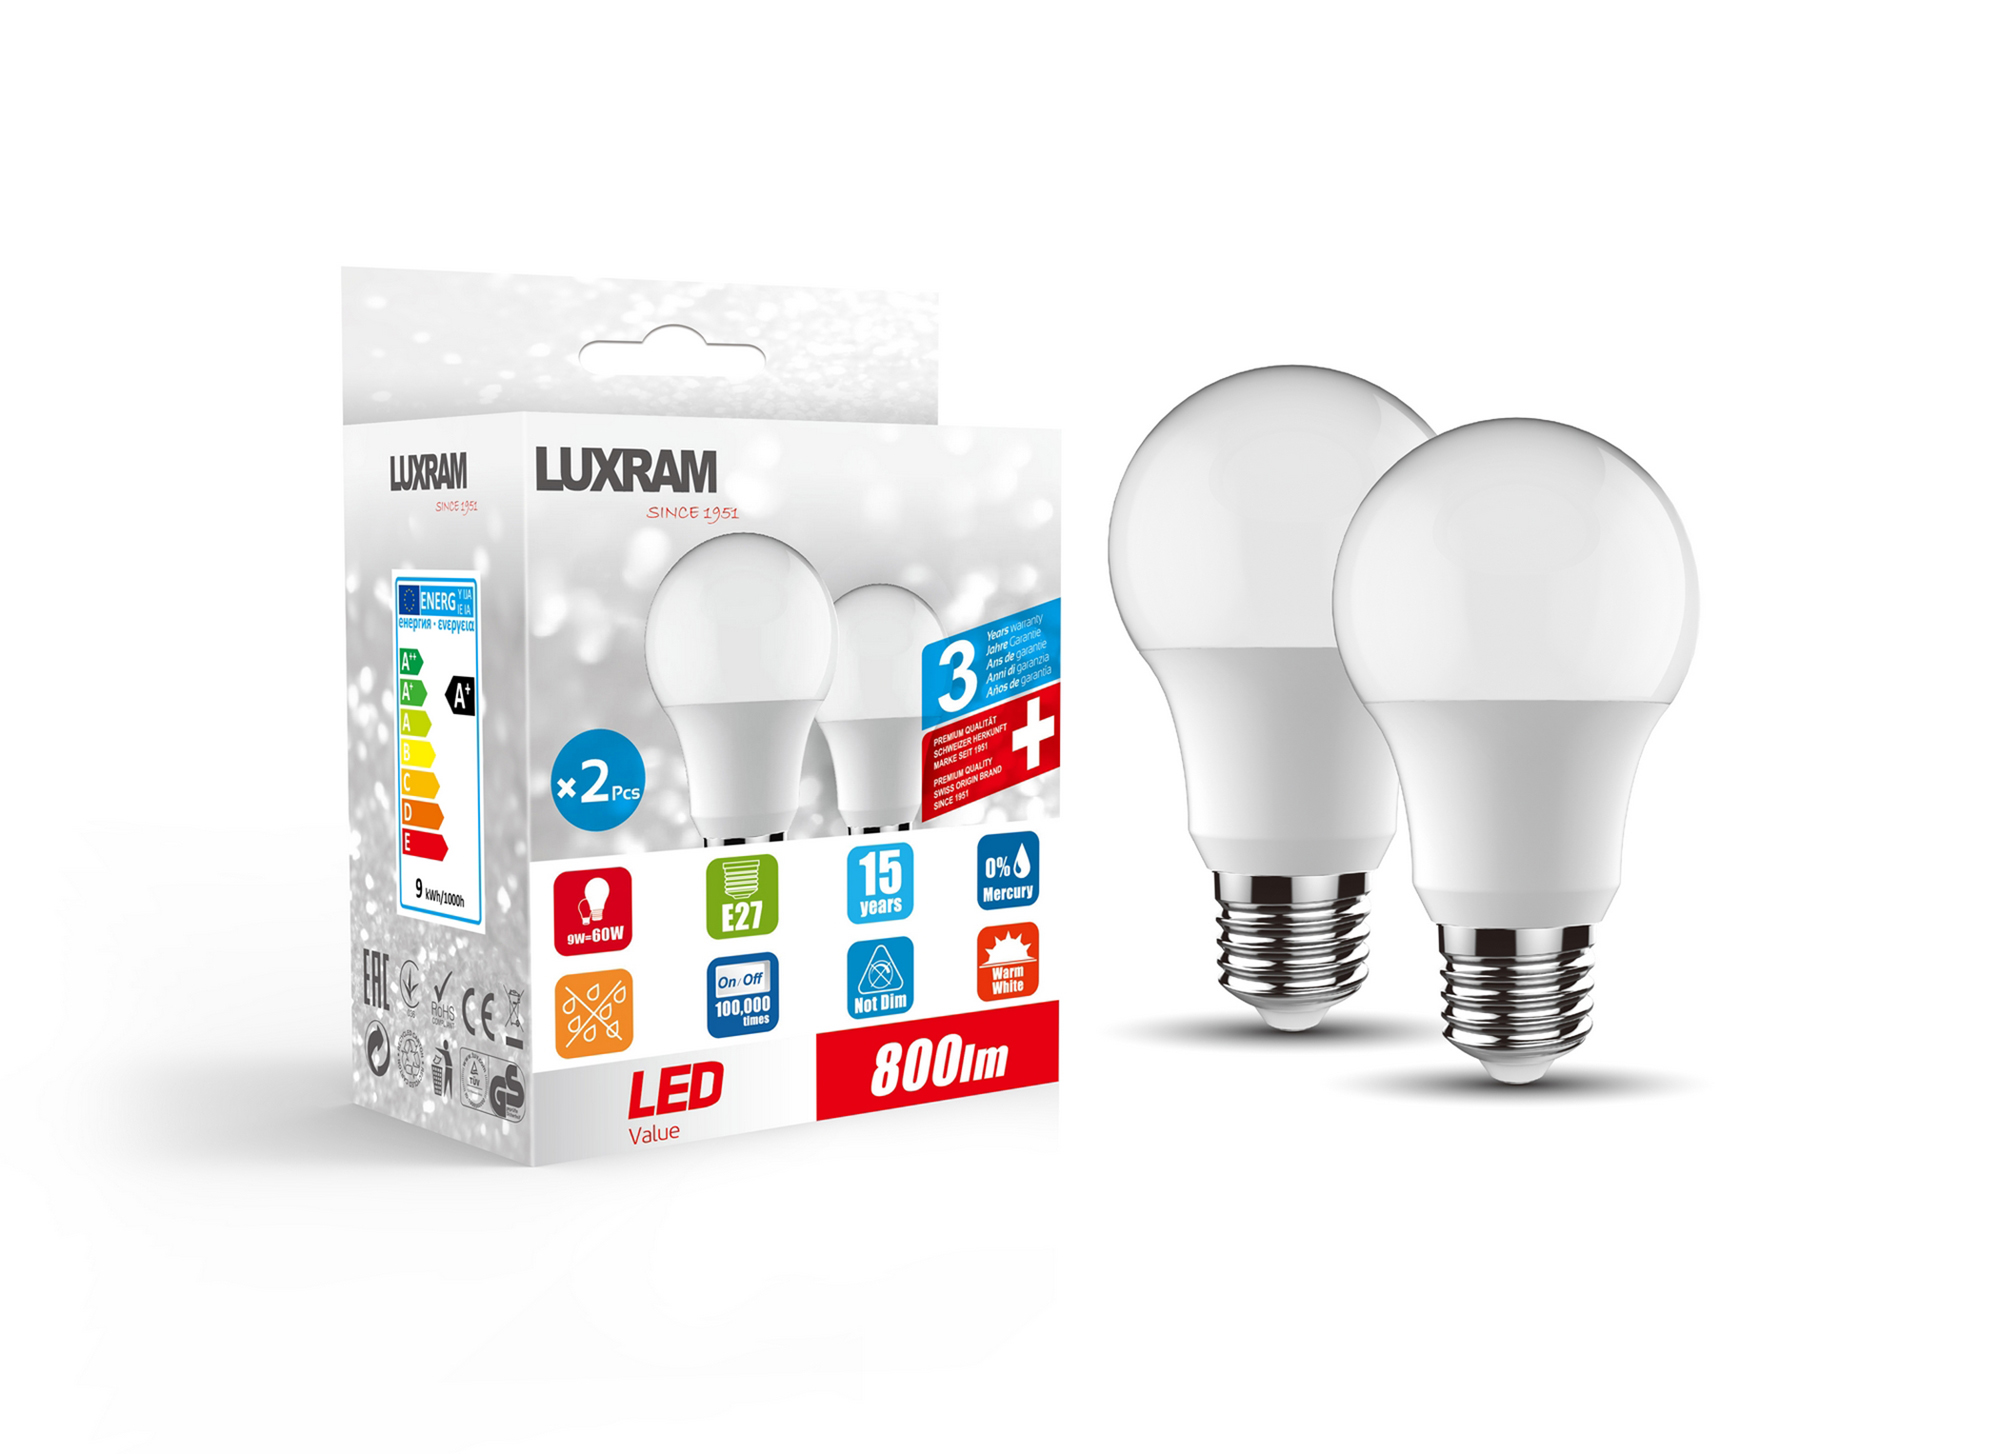 Duo-pack LED Lamps Luxram Spot Lamps